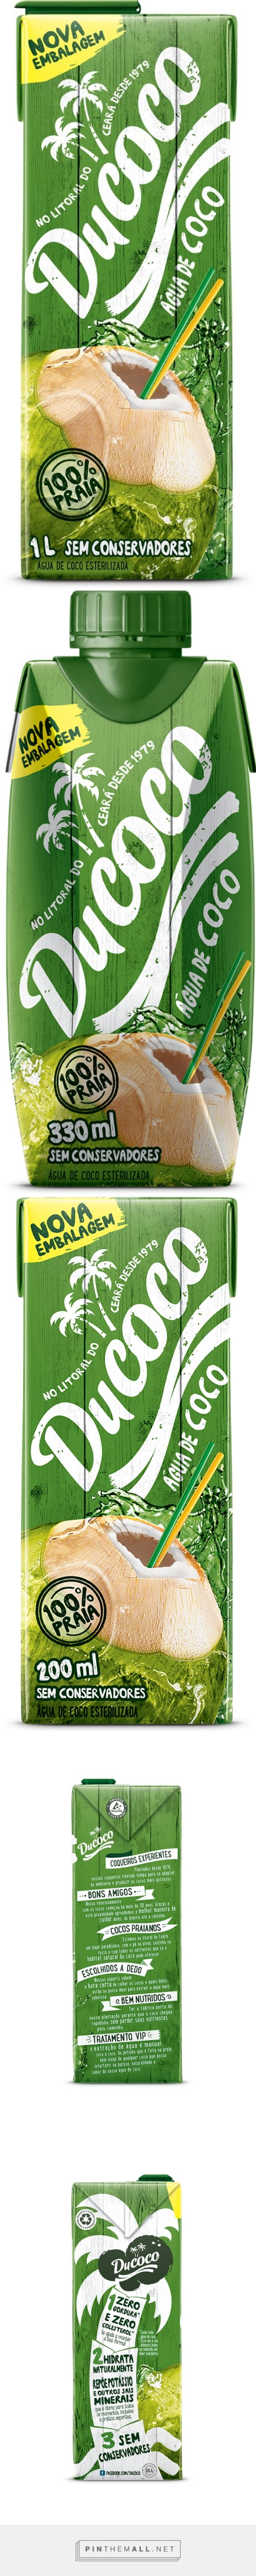 Ducoco renova embalagens de água de coco via EmbalagemMarca curated by Packaging Diva PD. Yummy coconut water packaging.